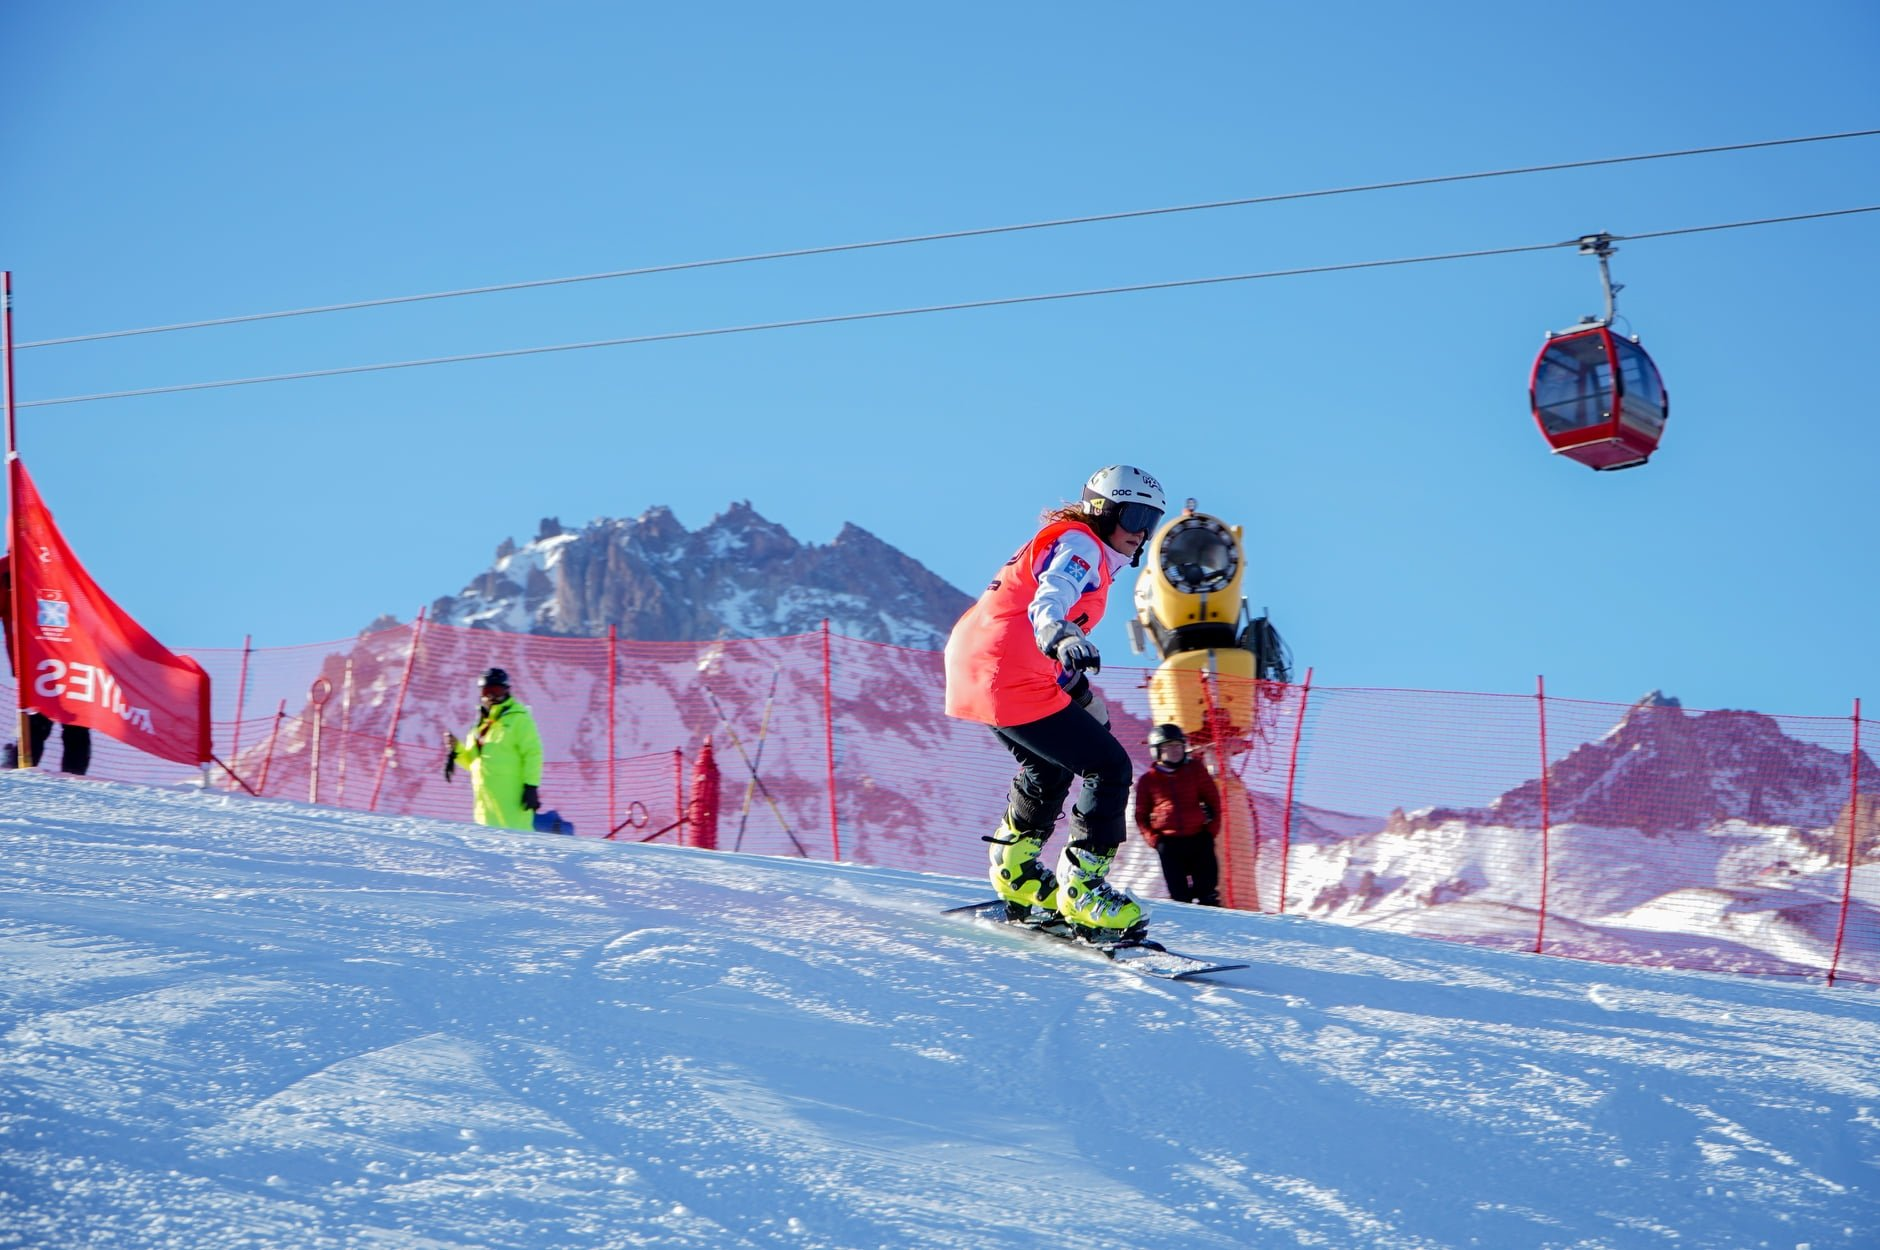 Erciyes Ski Resort was one of the top five destinations among 30 entries from Turkey, Jan. 13, 2021. (AA Photo)